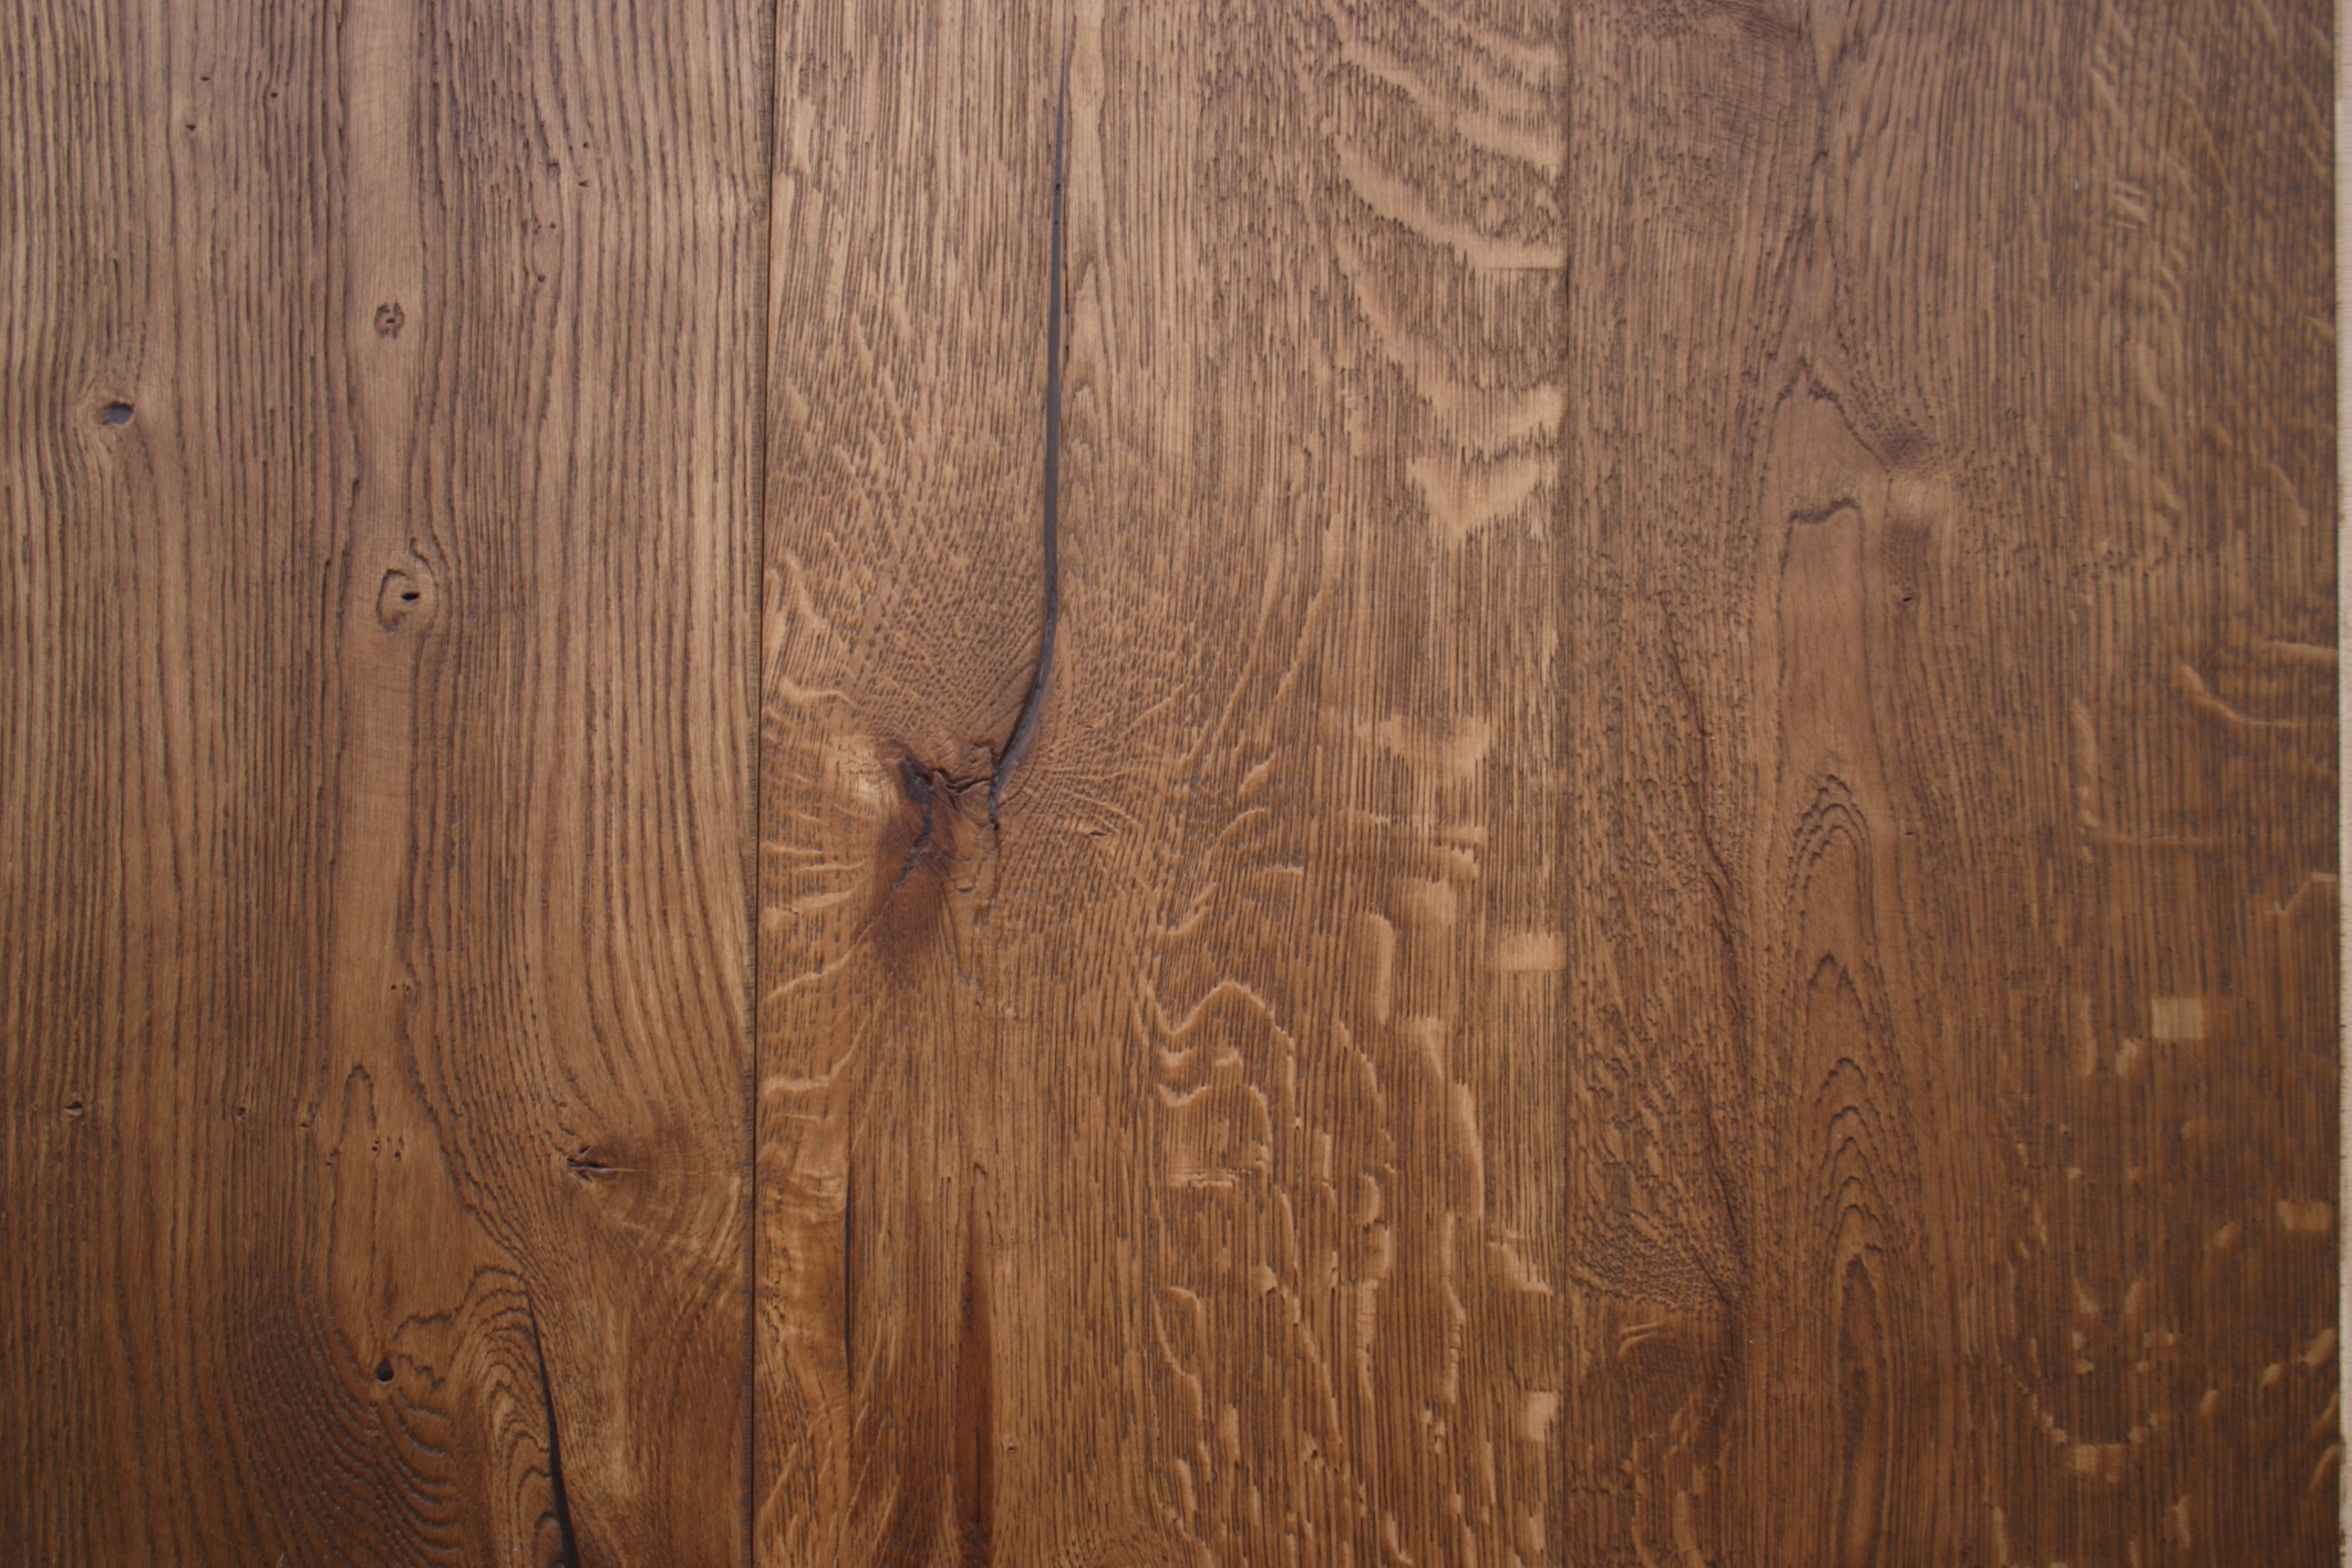 Very Impressive portraiture of home engineered wood flooring time honoured engineered distressed oak  with #4C2F21 color and 3072x2048 pixels